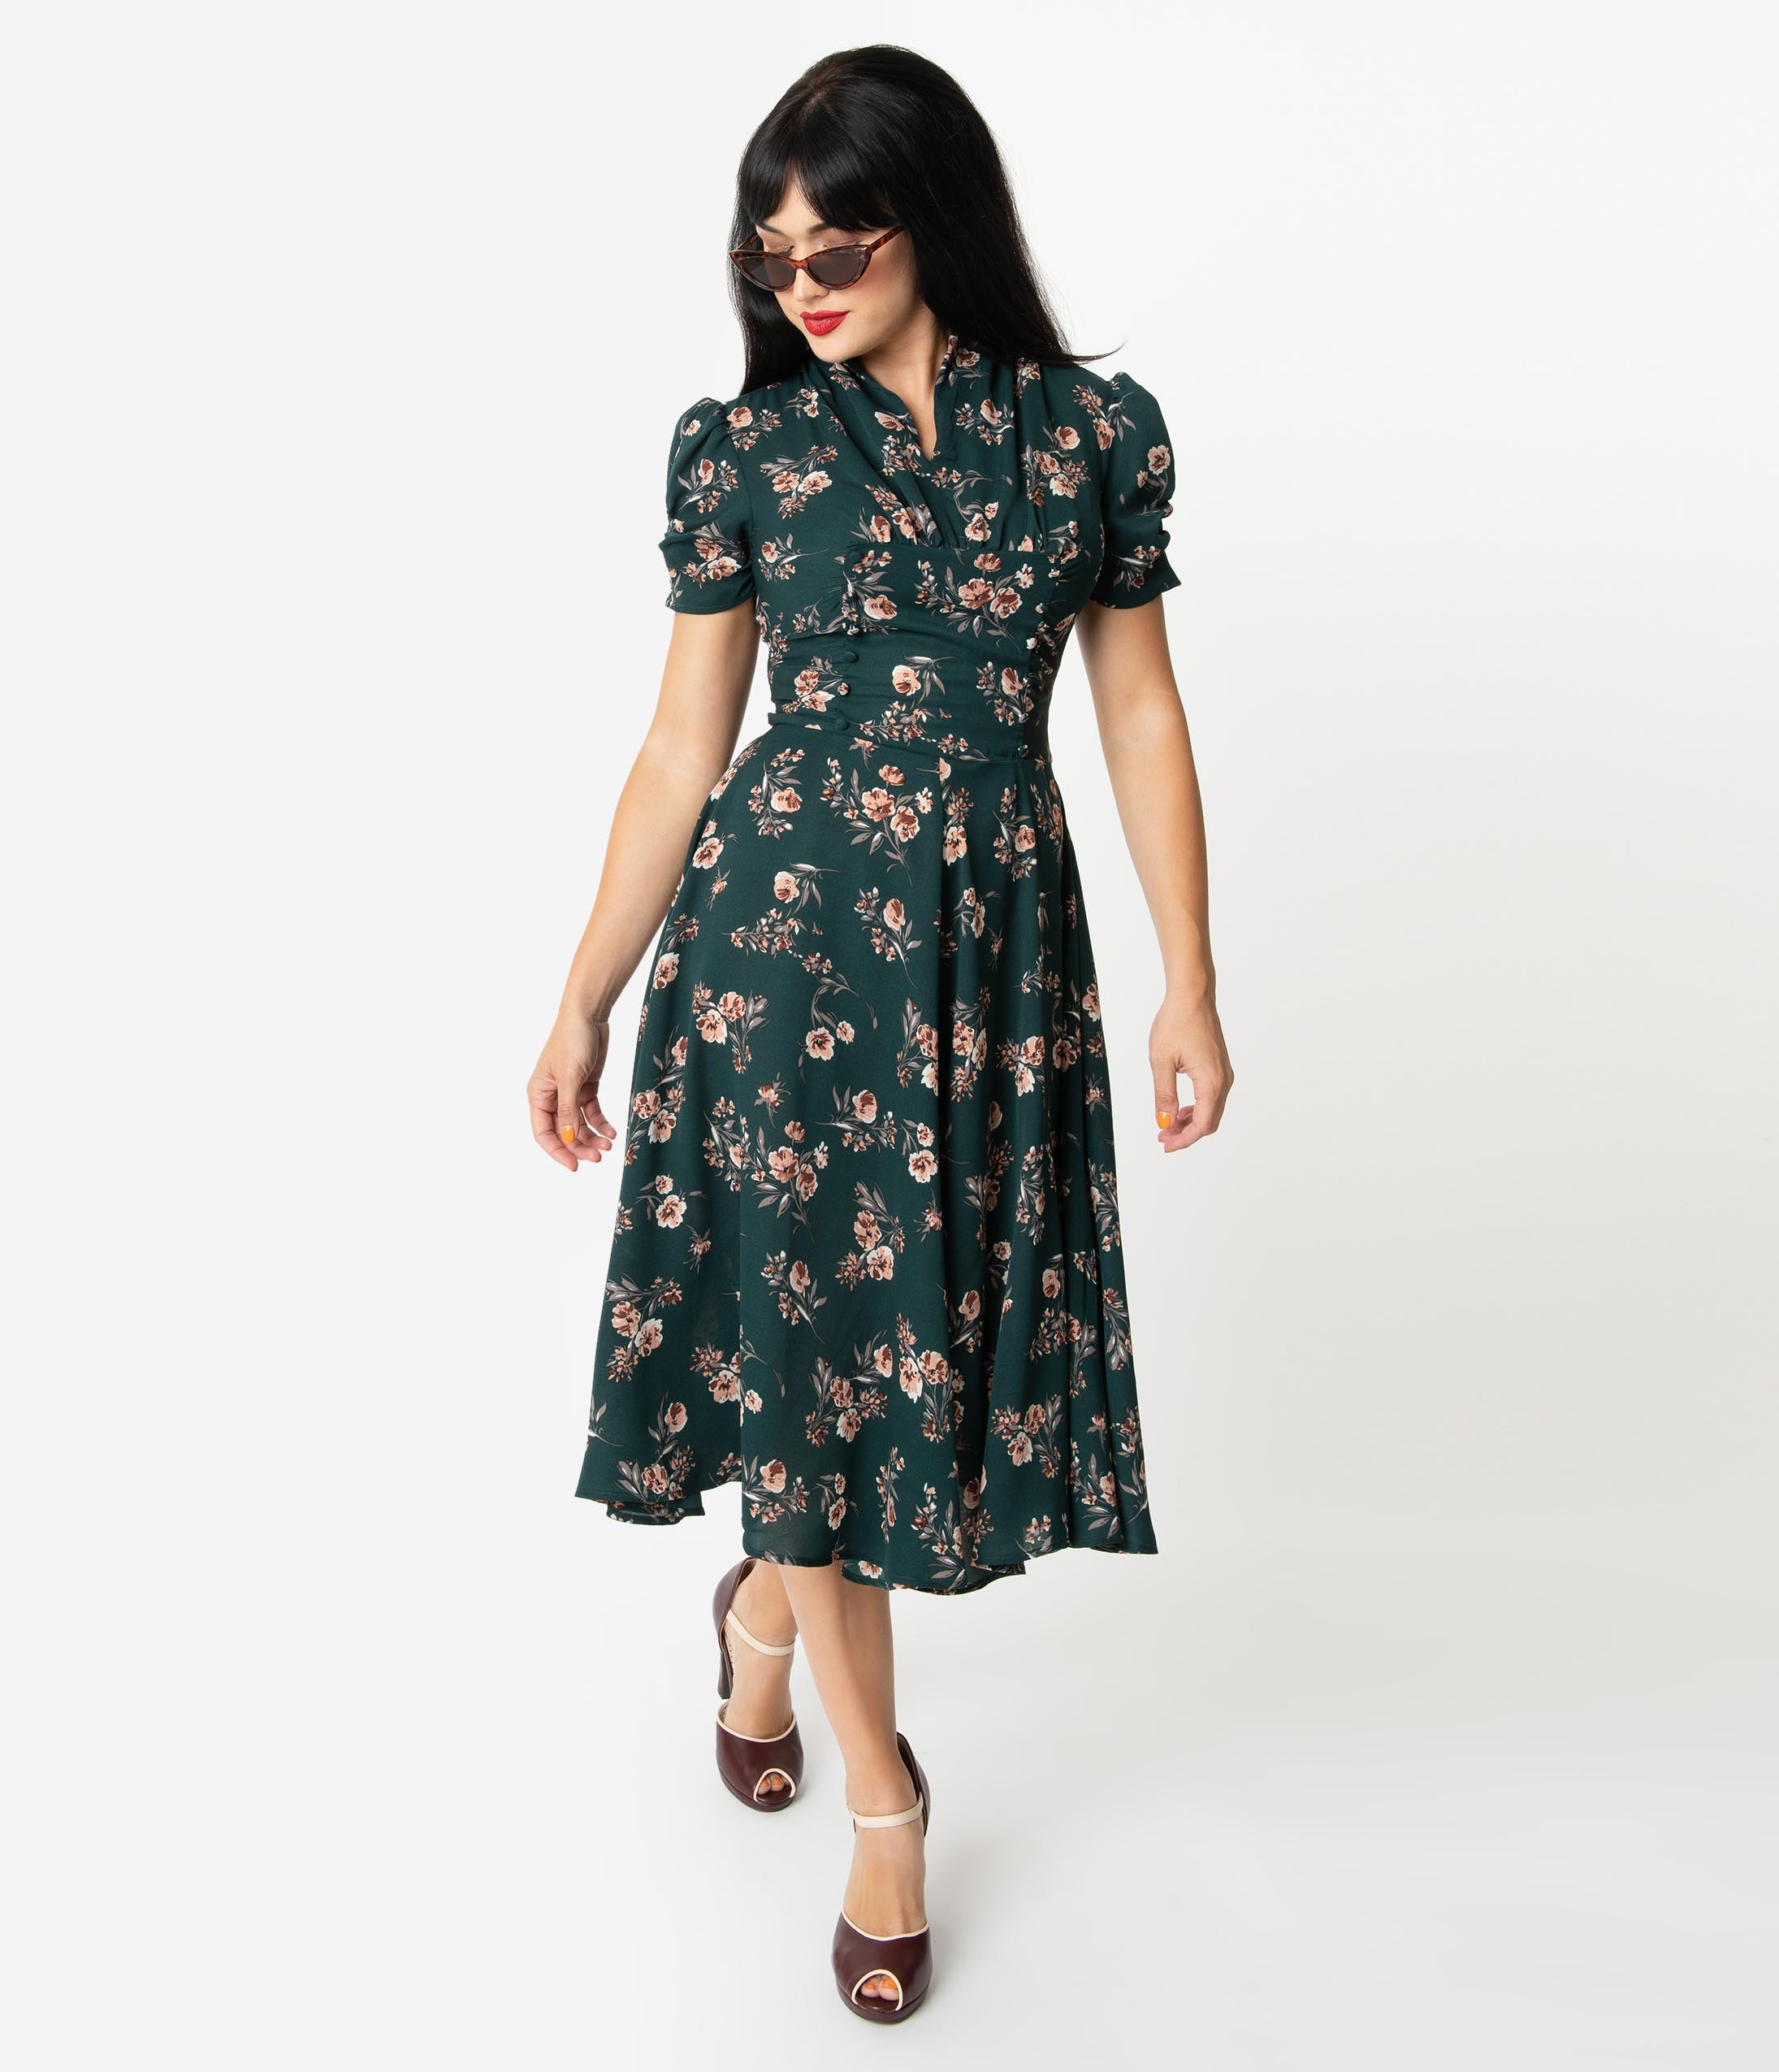 500 Vintage Style Dresses for Sale | Vintage Inspired Dresses Unique Vintage 1940S Green Floral Print Camilla Midi Dress $78.00 AT vintagedancer.com